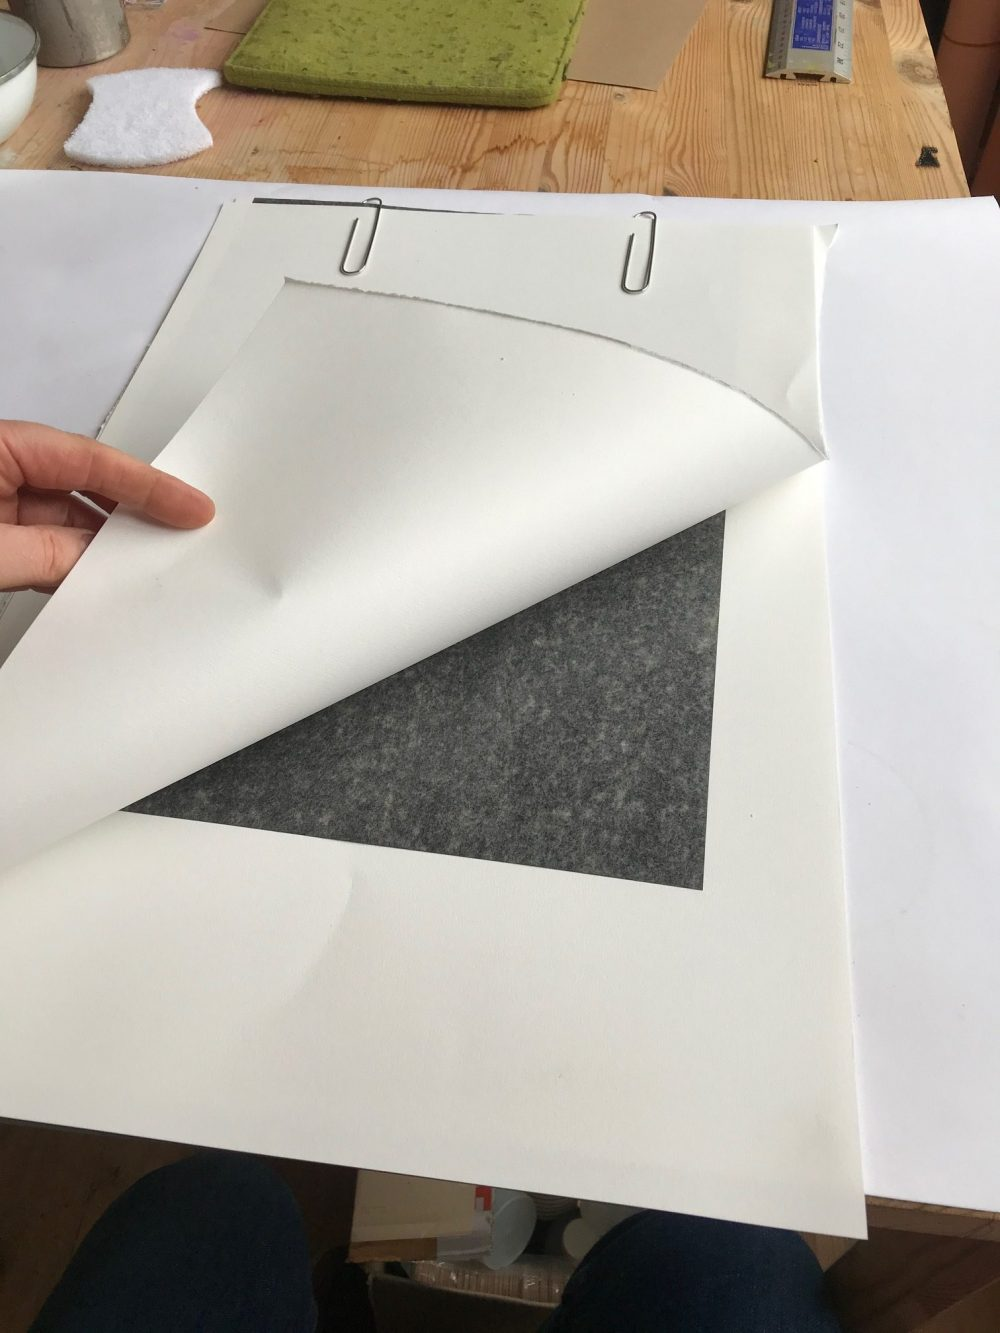 using carbon paper to sketch